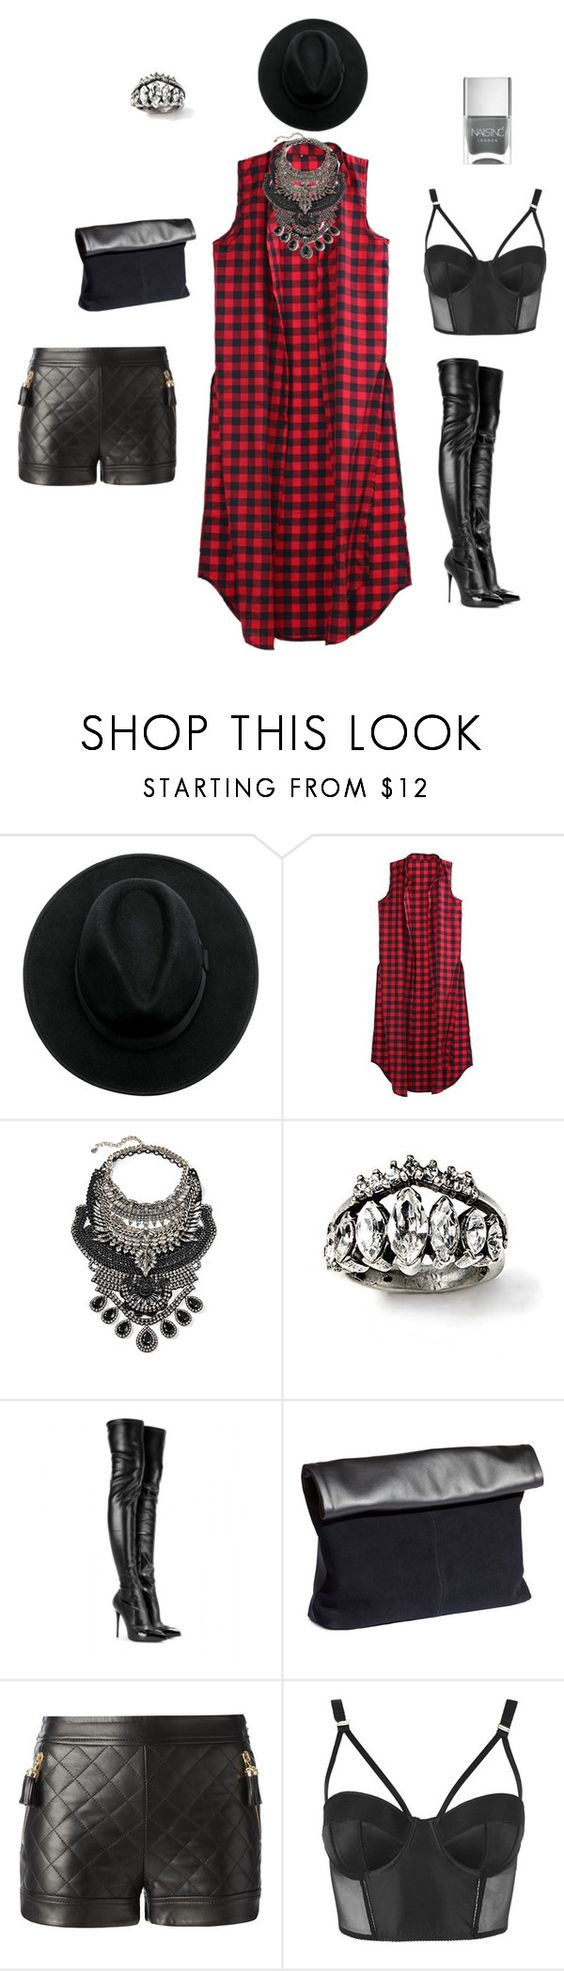 fashion express by sidoney-sterling on Polyvore featuring Moschino, Topshop, Alexander McQueen, H&M, DYLANLEX and Nails Inc.